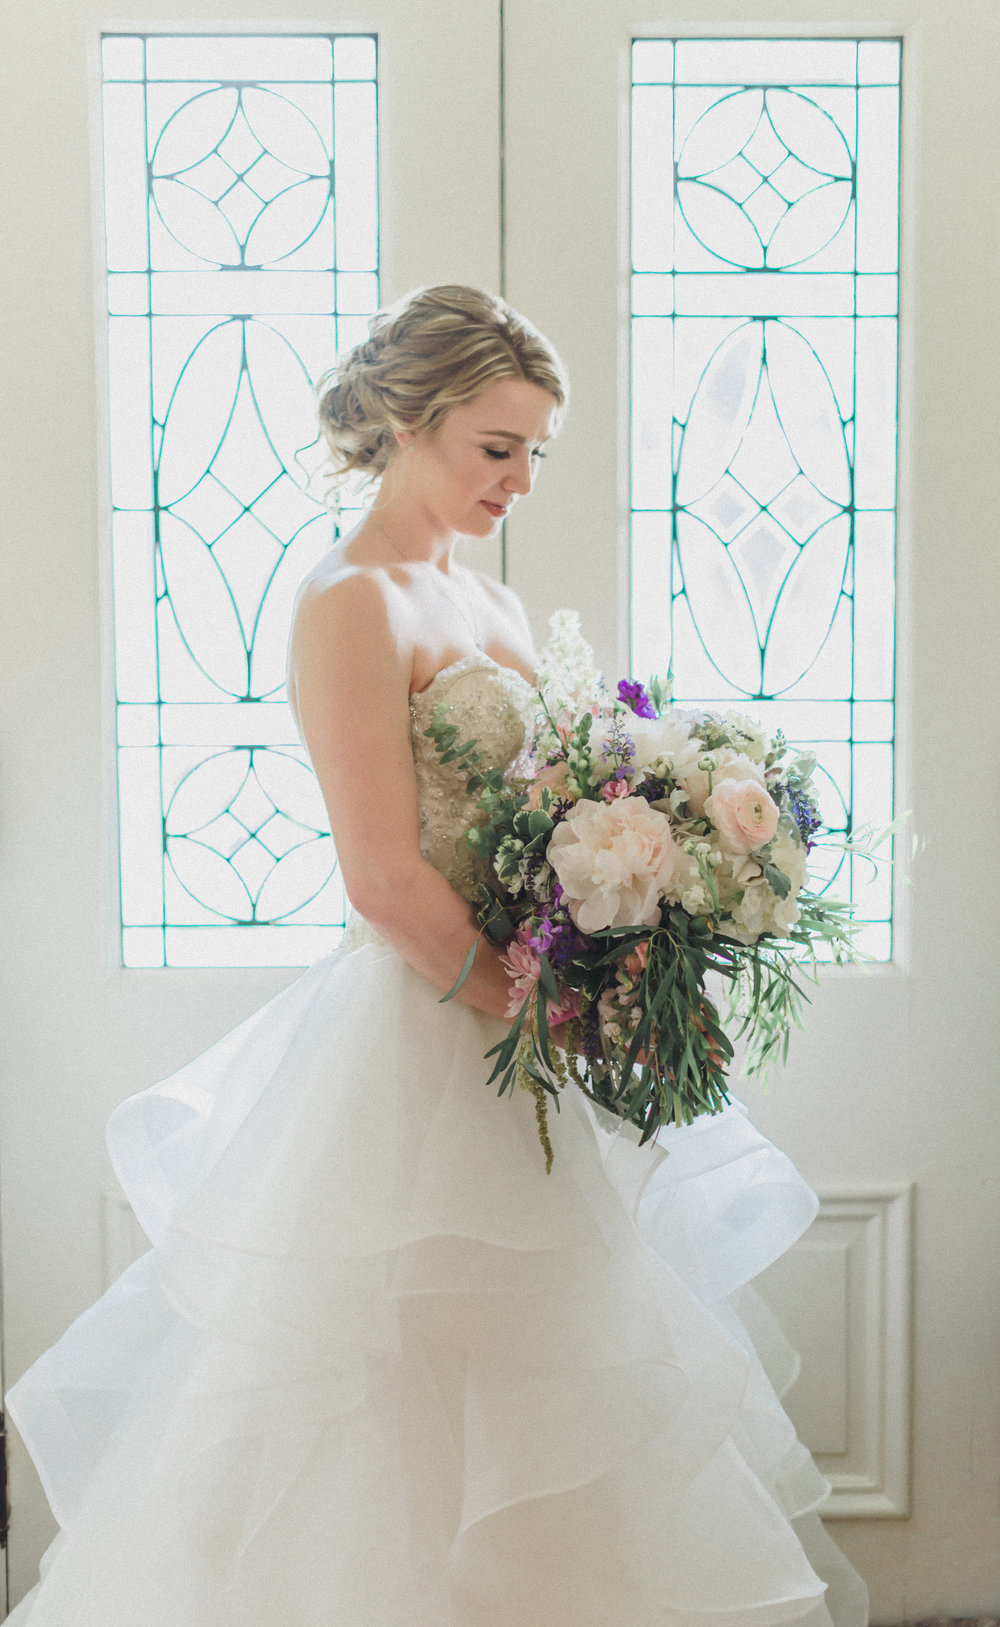 The beautiful bride and her lush bouquet full of summer favorites including peonies, snap dragon, ranunculus, stock, hydrangea, willow eucalyptus, dusty miller, pittosporum, and hanging amaranths- to name a few!